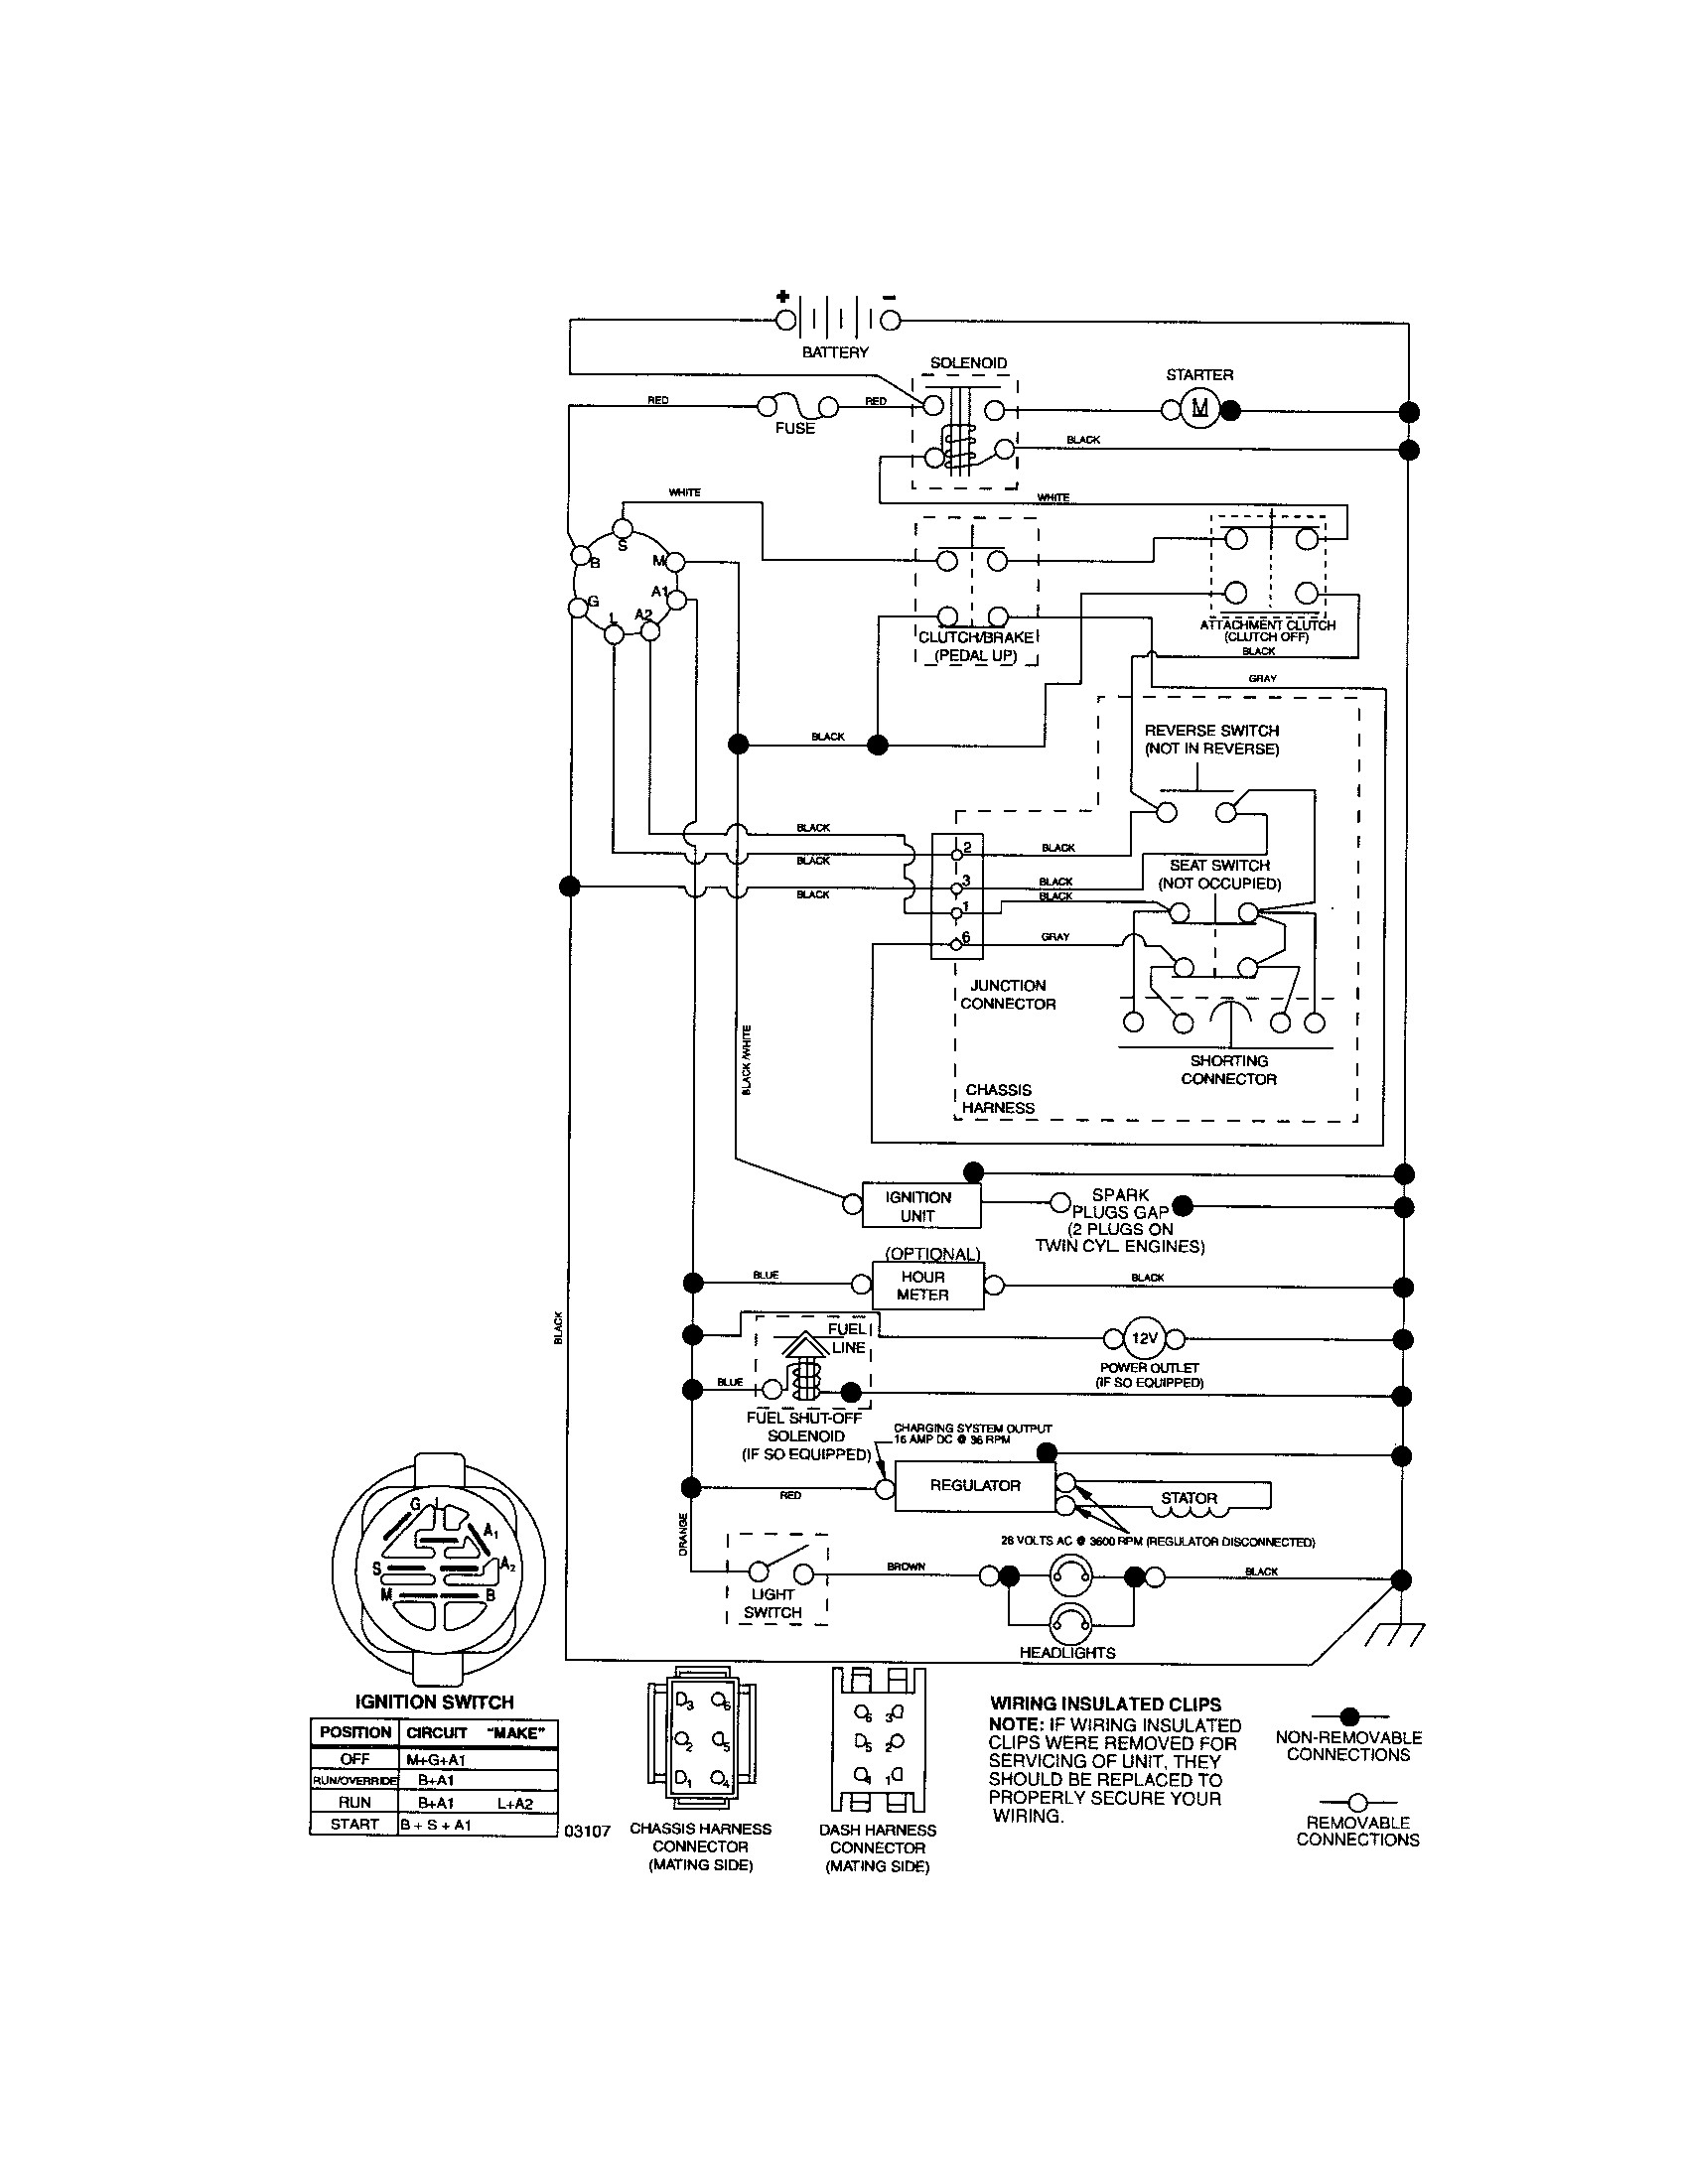 Briggs and Stratton Lawn Mower Parts Diagram Craftsman Riding Mower Electrical Diagram Of Briggs and Stratton Lawn Mower Parts Diagram Briggs and Stratton Recoil Starter assembly Diagram – Awesome